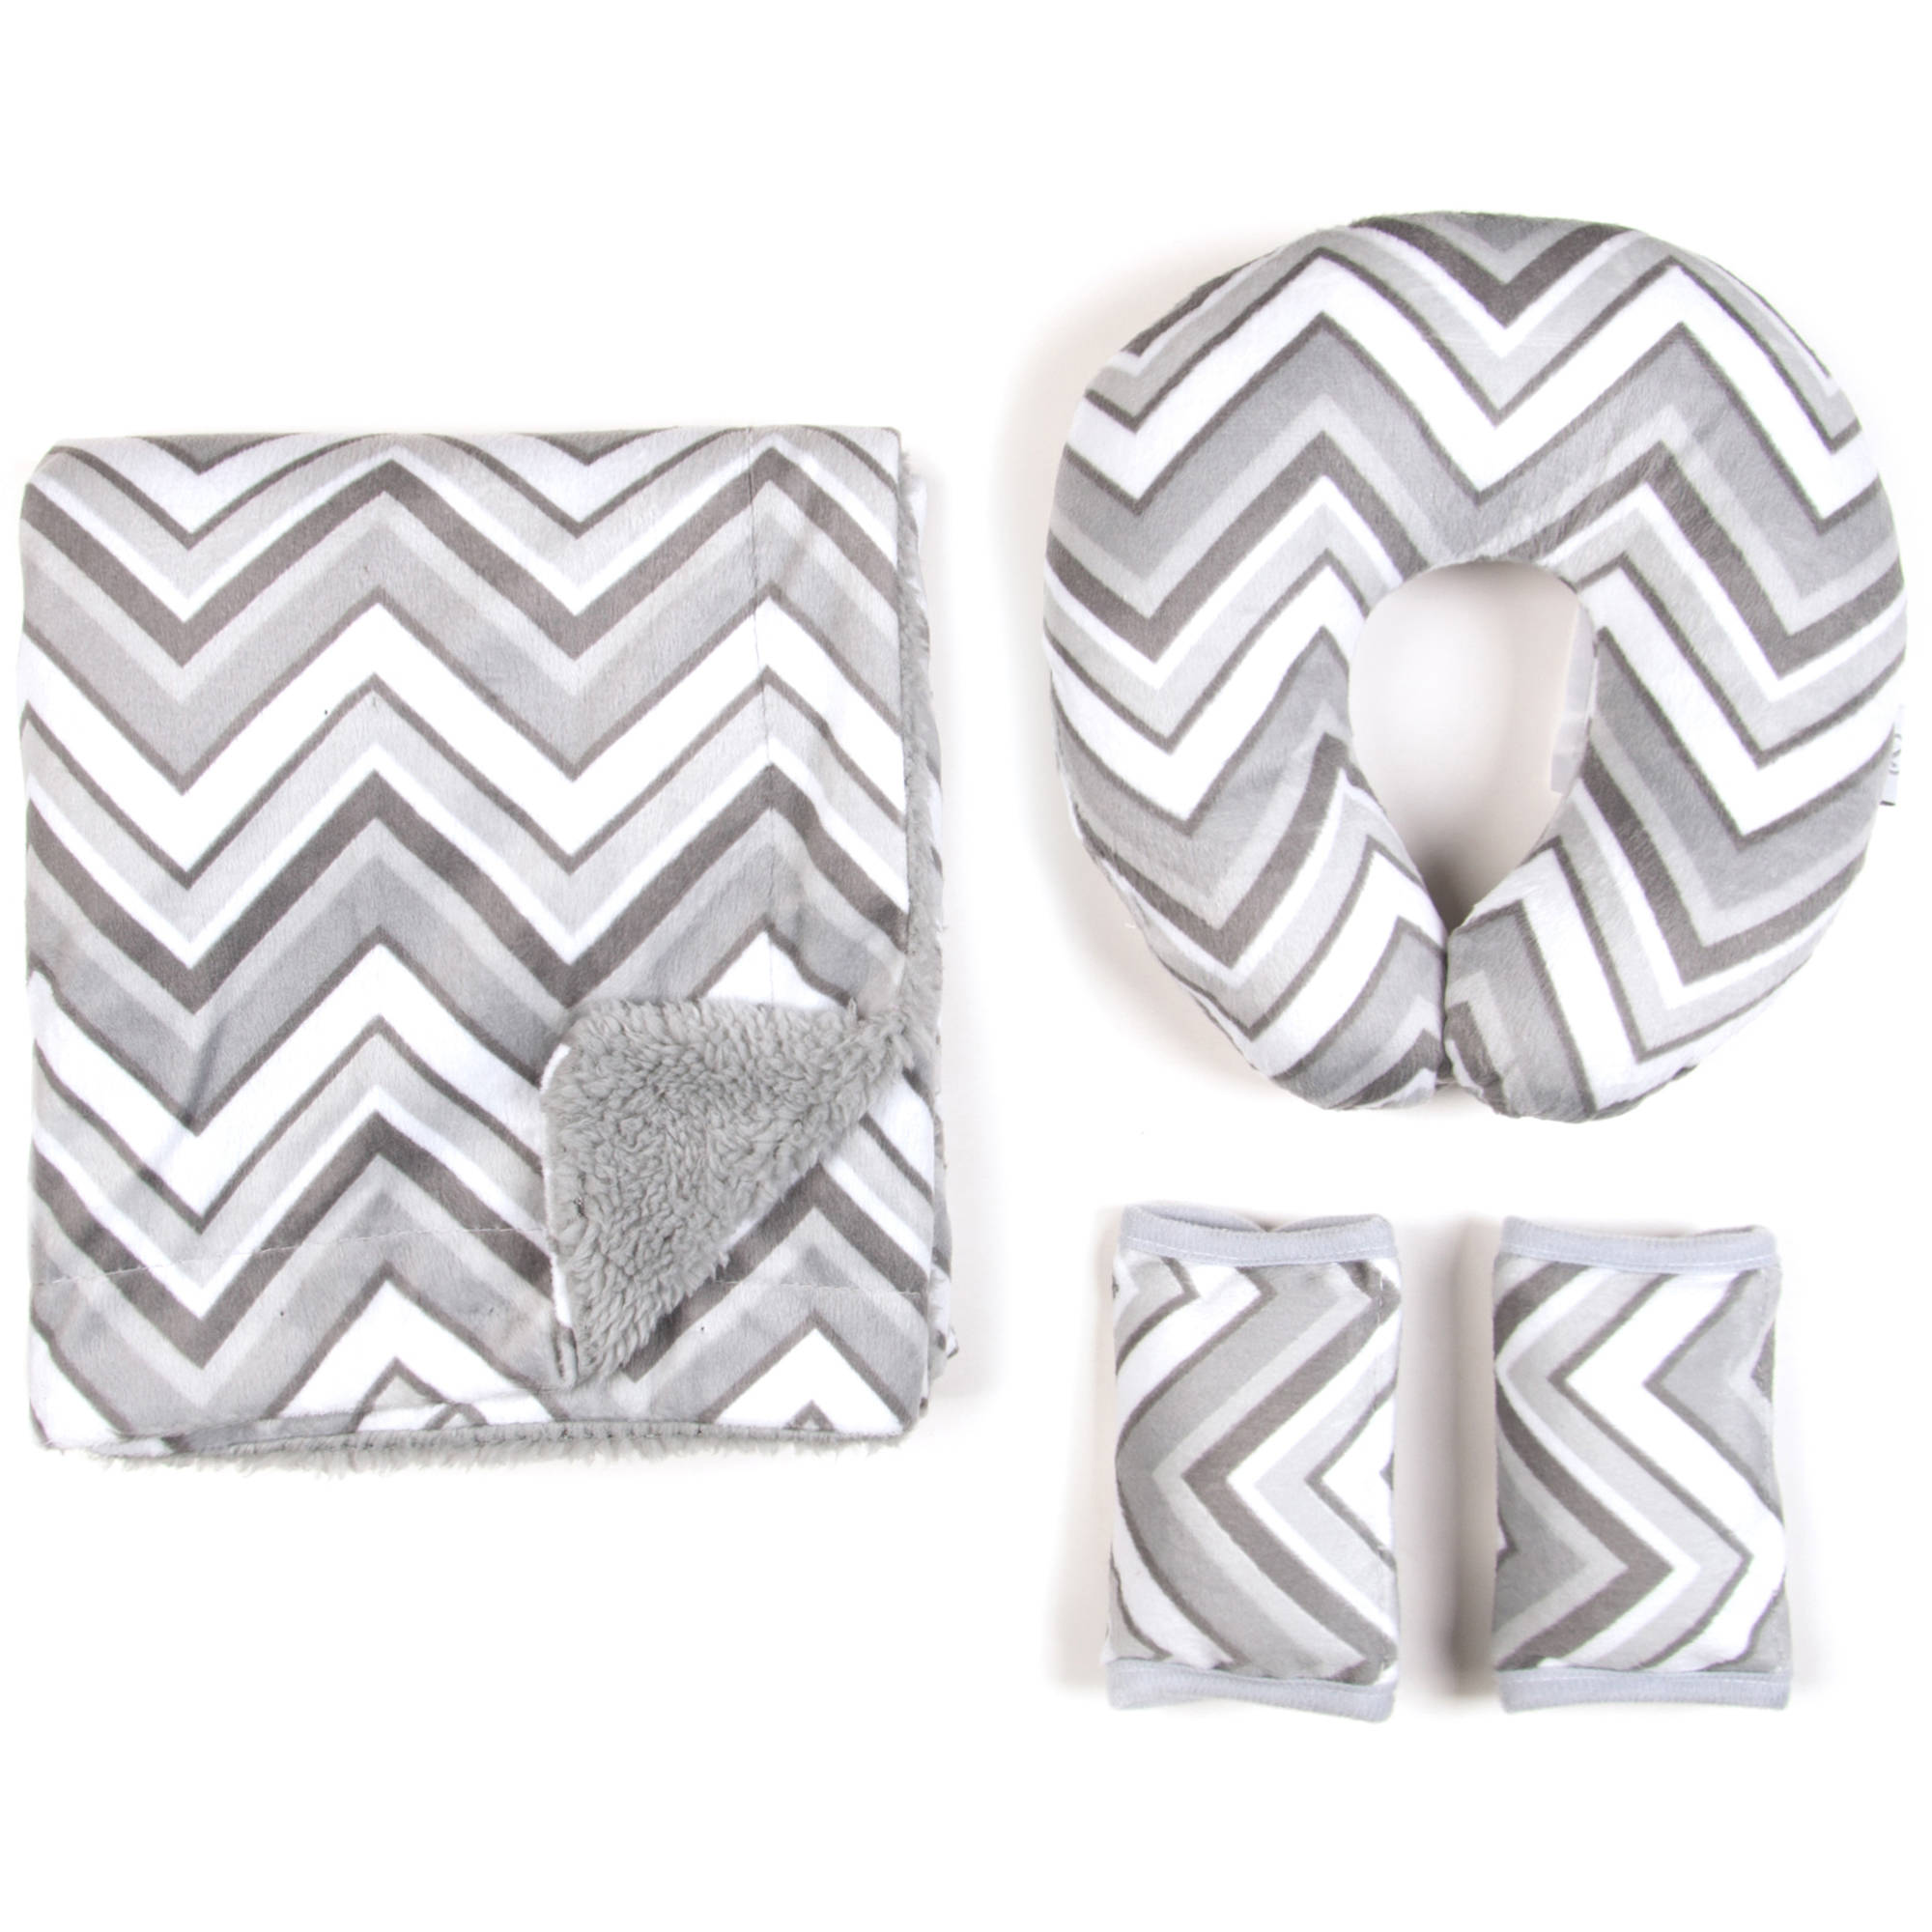 Tadpoles Kids Travel Pillow with Matching Blanket and Strap Covers, Grey Chevron